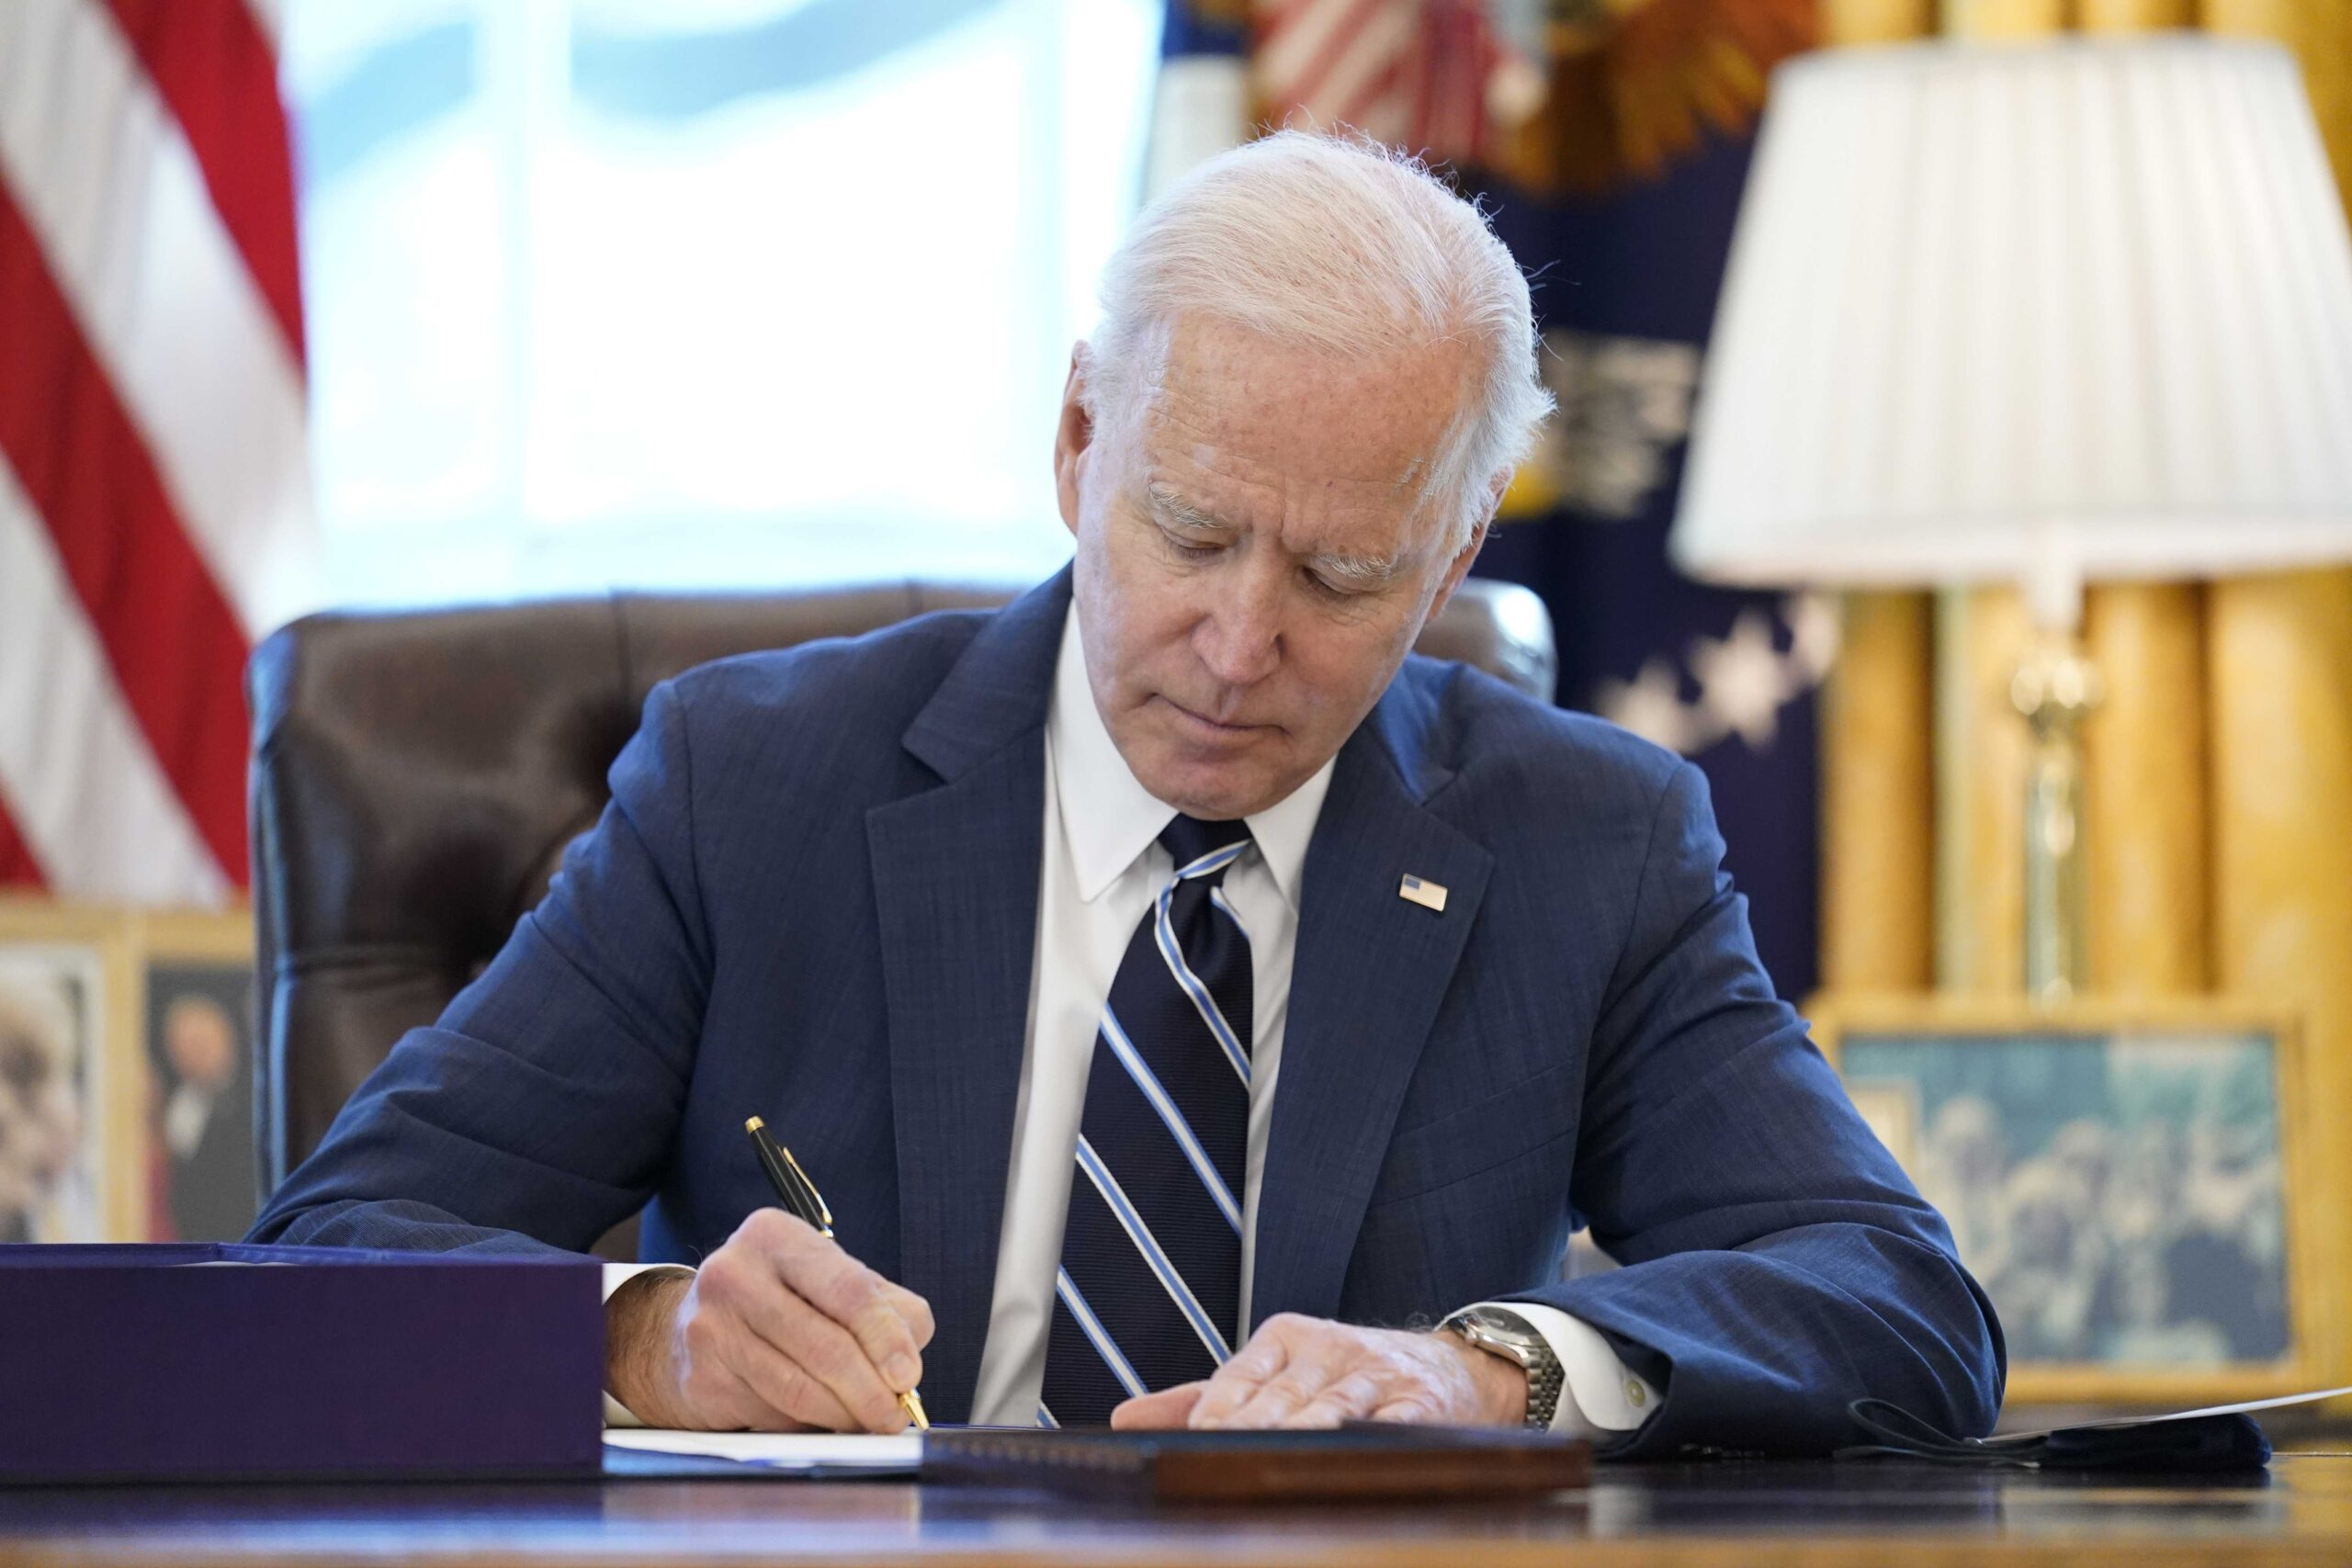 Texas AG sues Biden administration over Keystone XL pipeline revocation 6